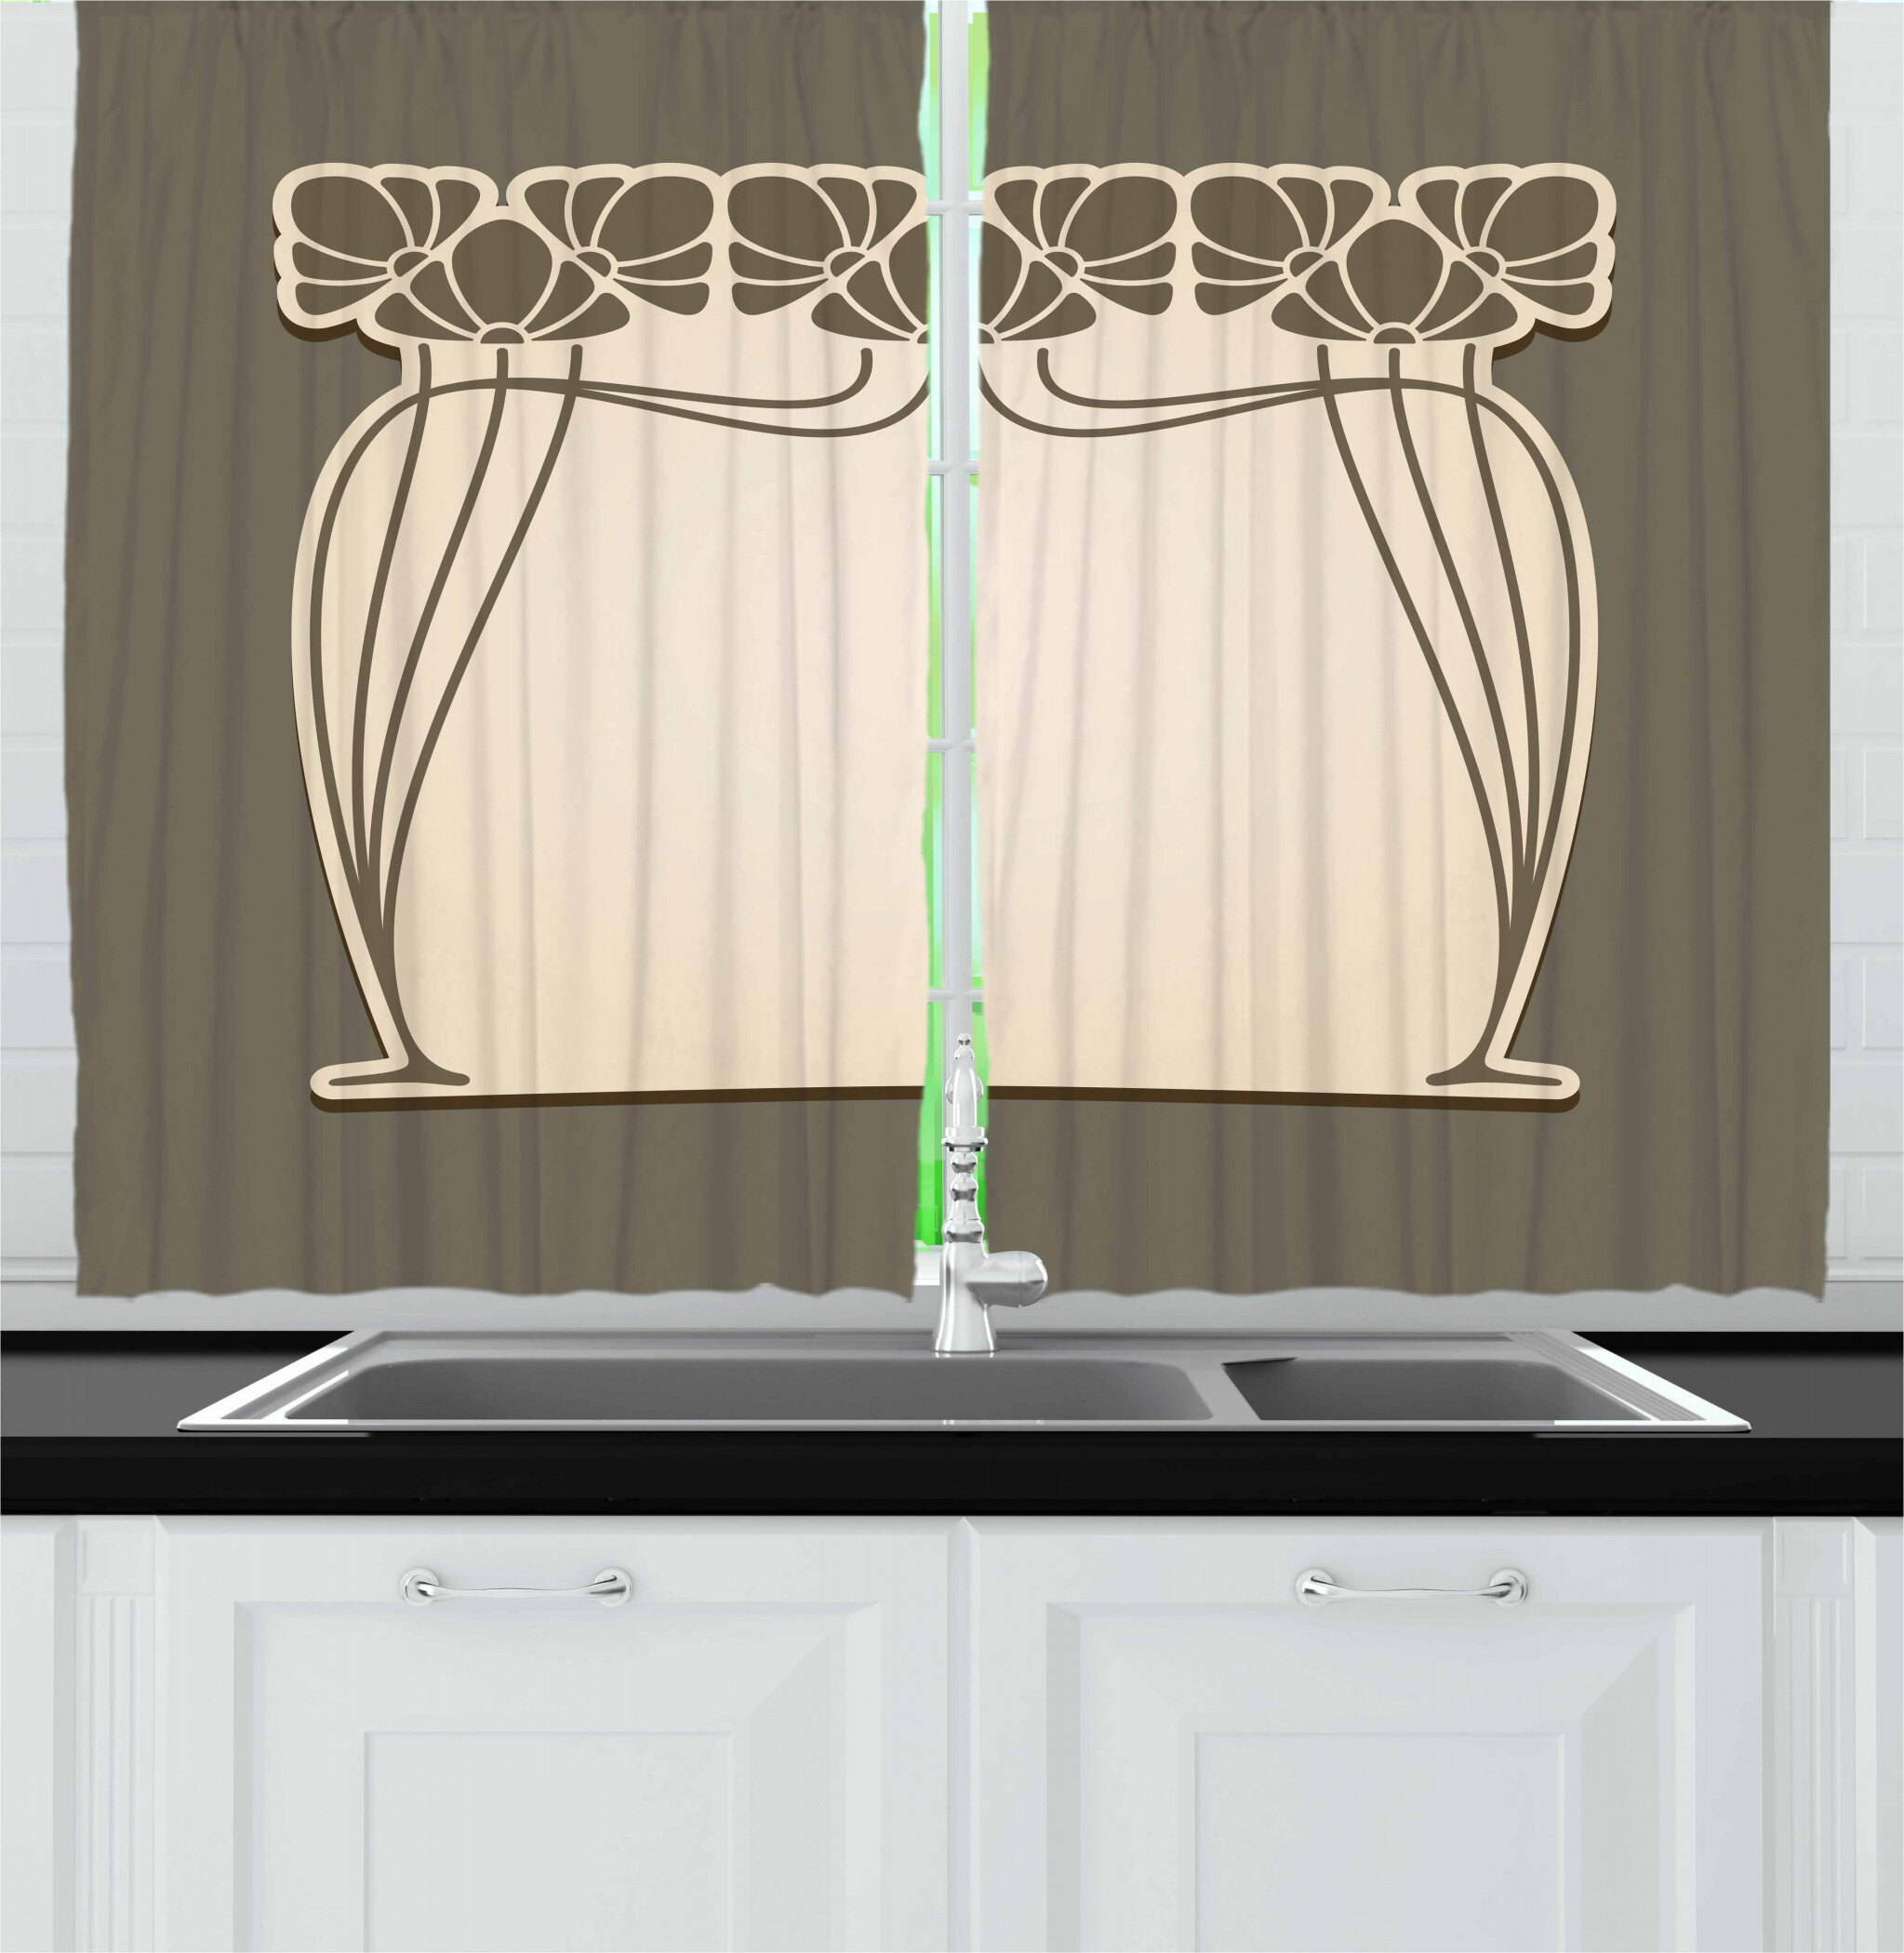 East Urban Home Art Nouveau 55 2 Piece Kitchen Curtain Set Wayfair